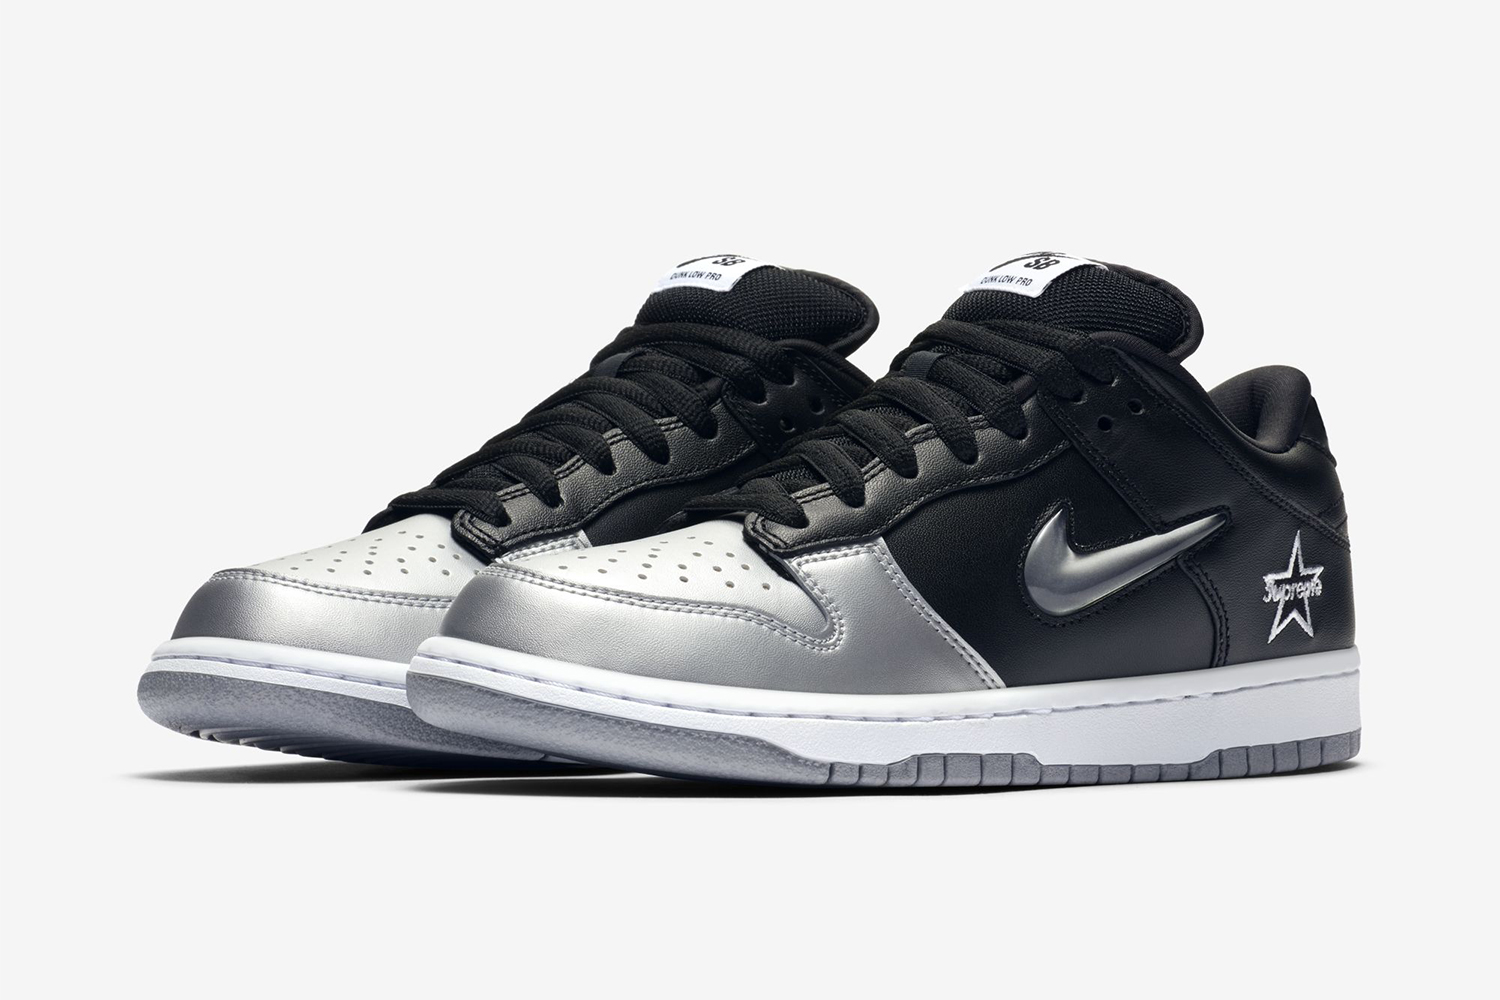 reputable site b9aee 01f9d Supreme x Nike SB Dunk Low